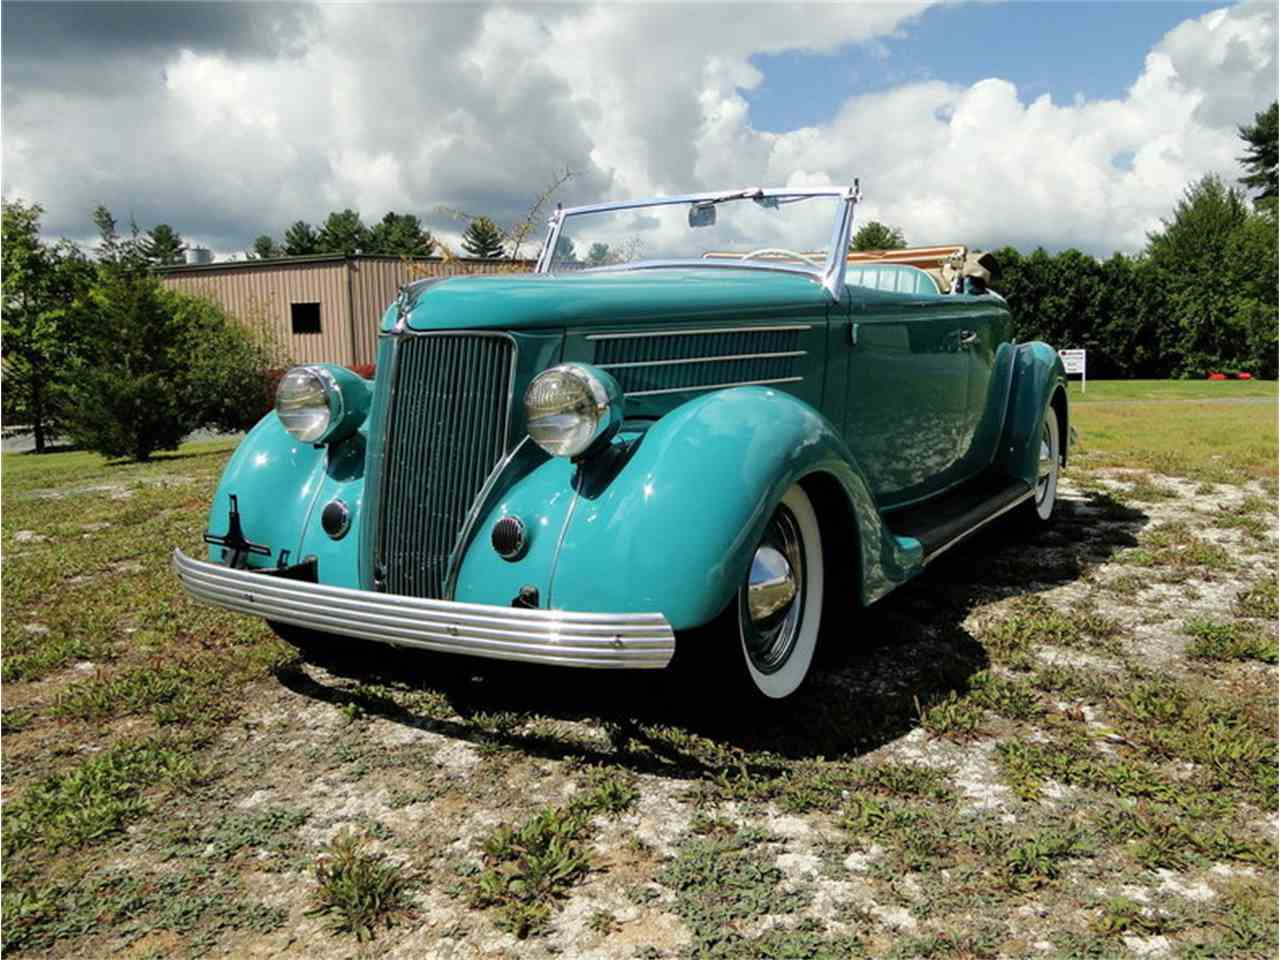 Large Picture of 1936 Ford Roadster located in Massachusetts - $43,000.00 - LUUG